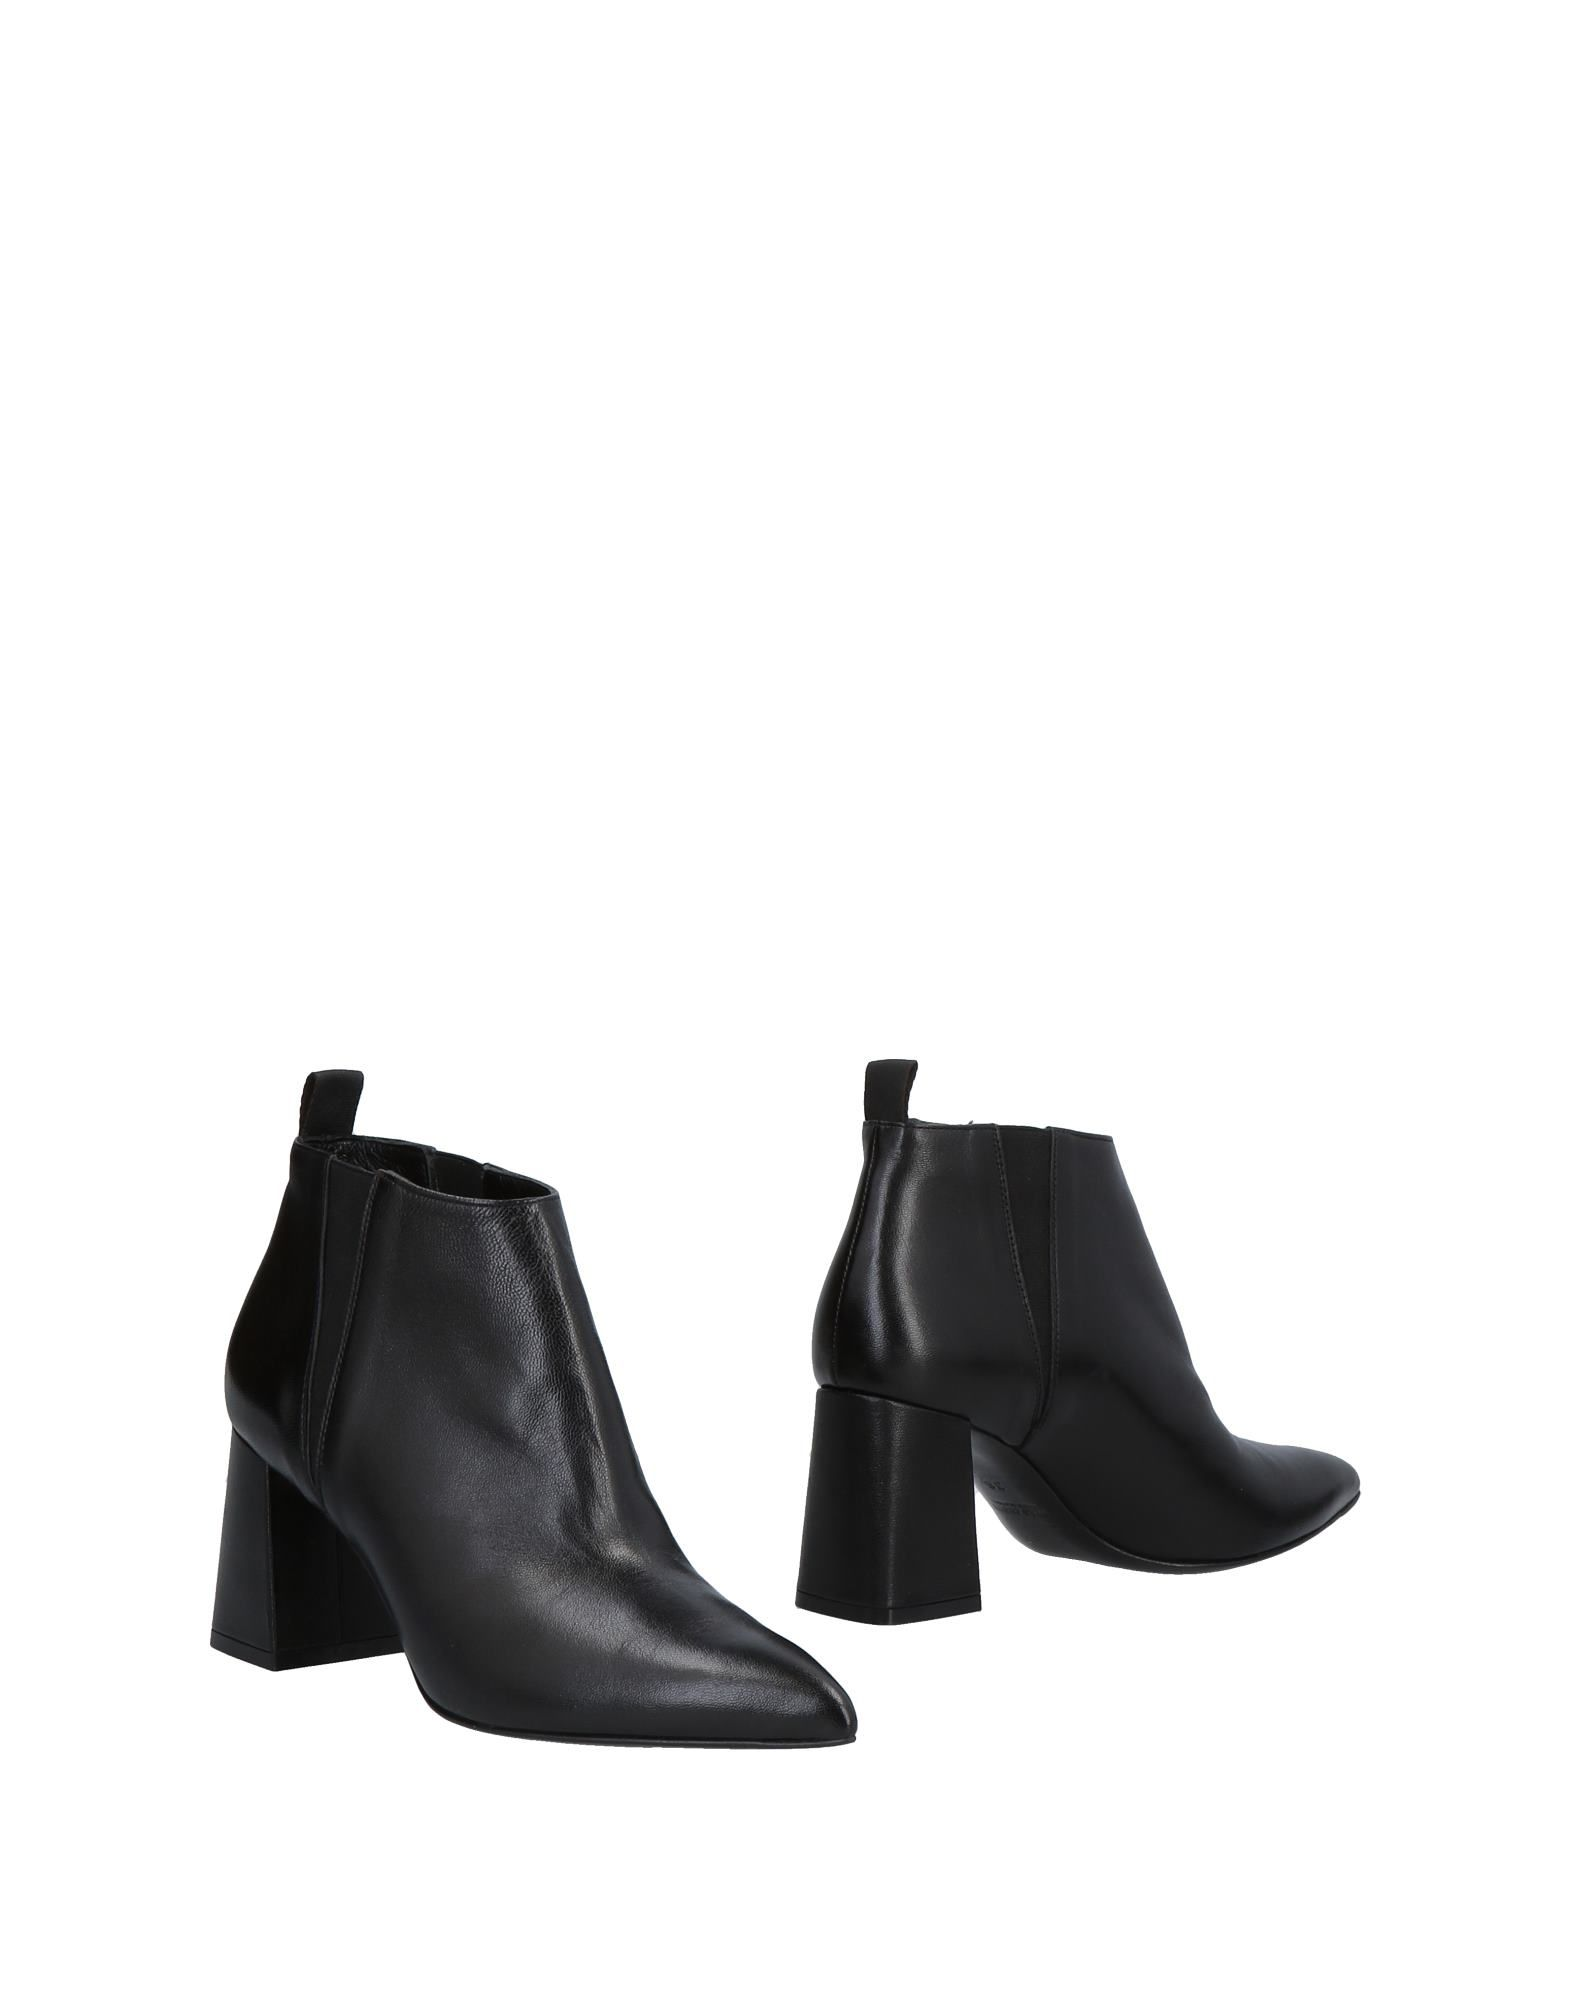 Bruschi Ankle Boot Boot Ankle - Women Bruschi Ankle Boots online on  United Kingdom - 11486674SP 17883c